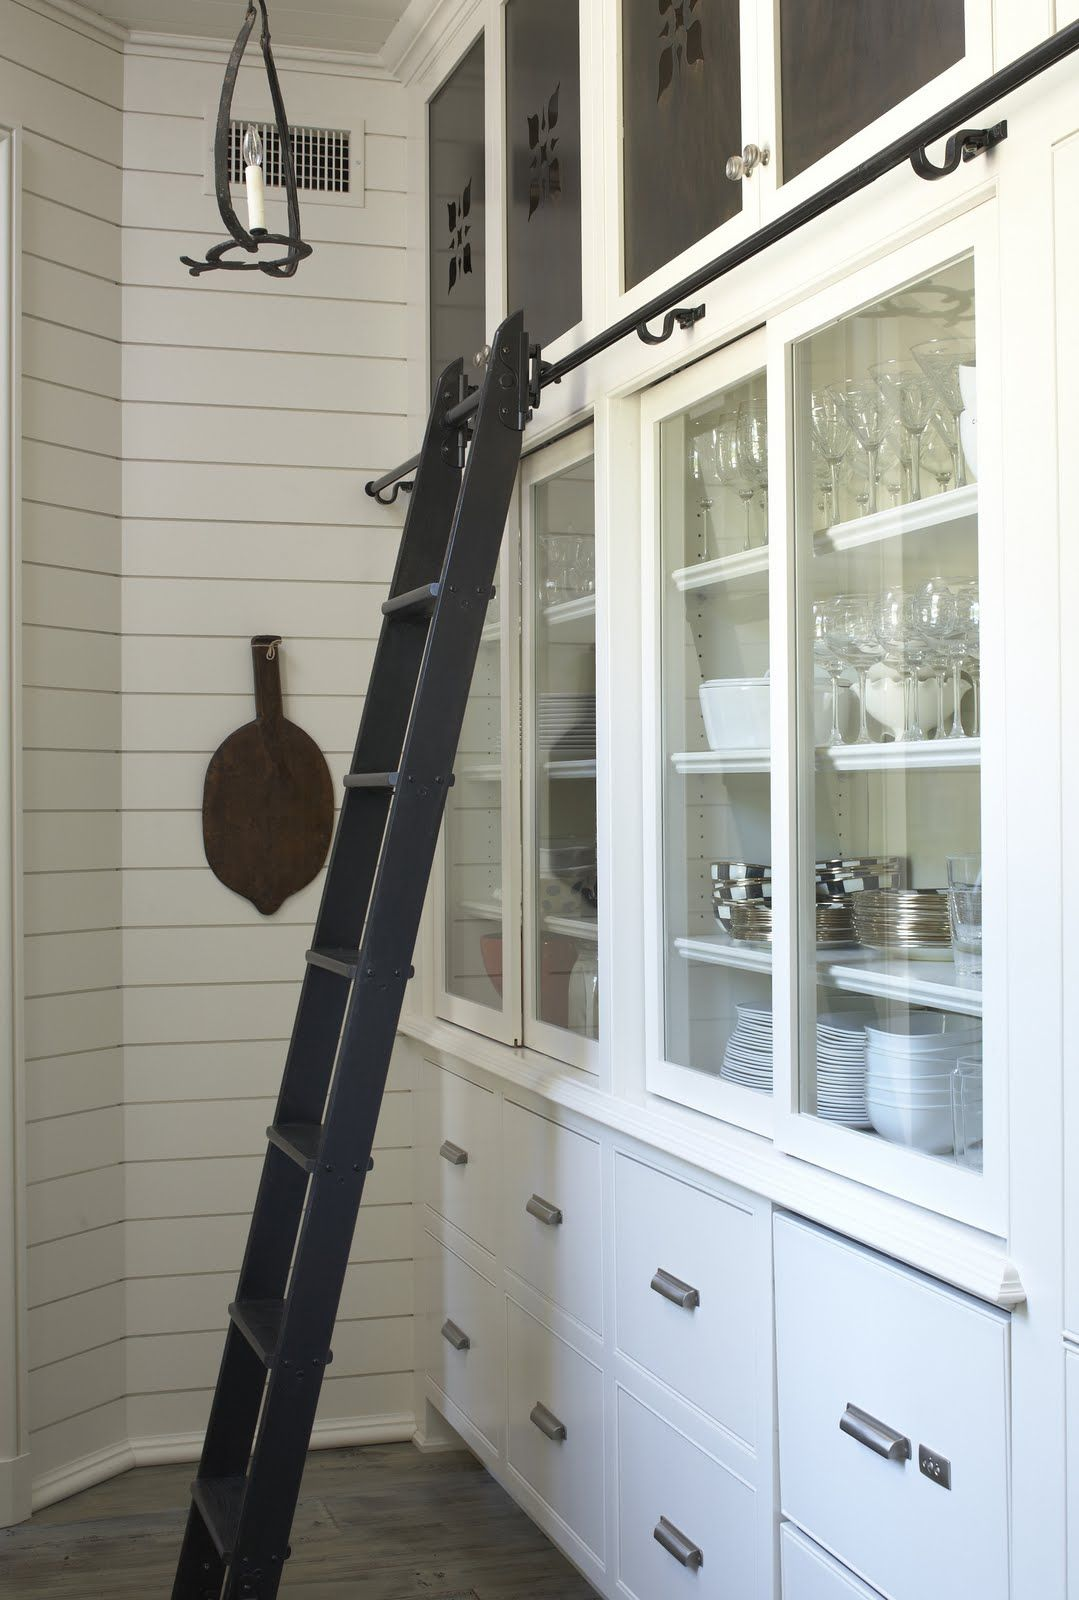 Kitchen Decor Ladder Wouldn 39t Want A Ladder In My Kitchen But Maybe The Butler